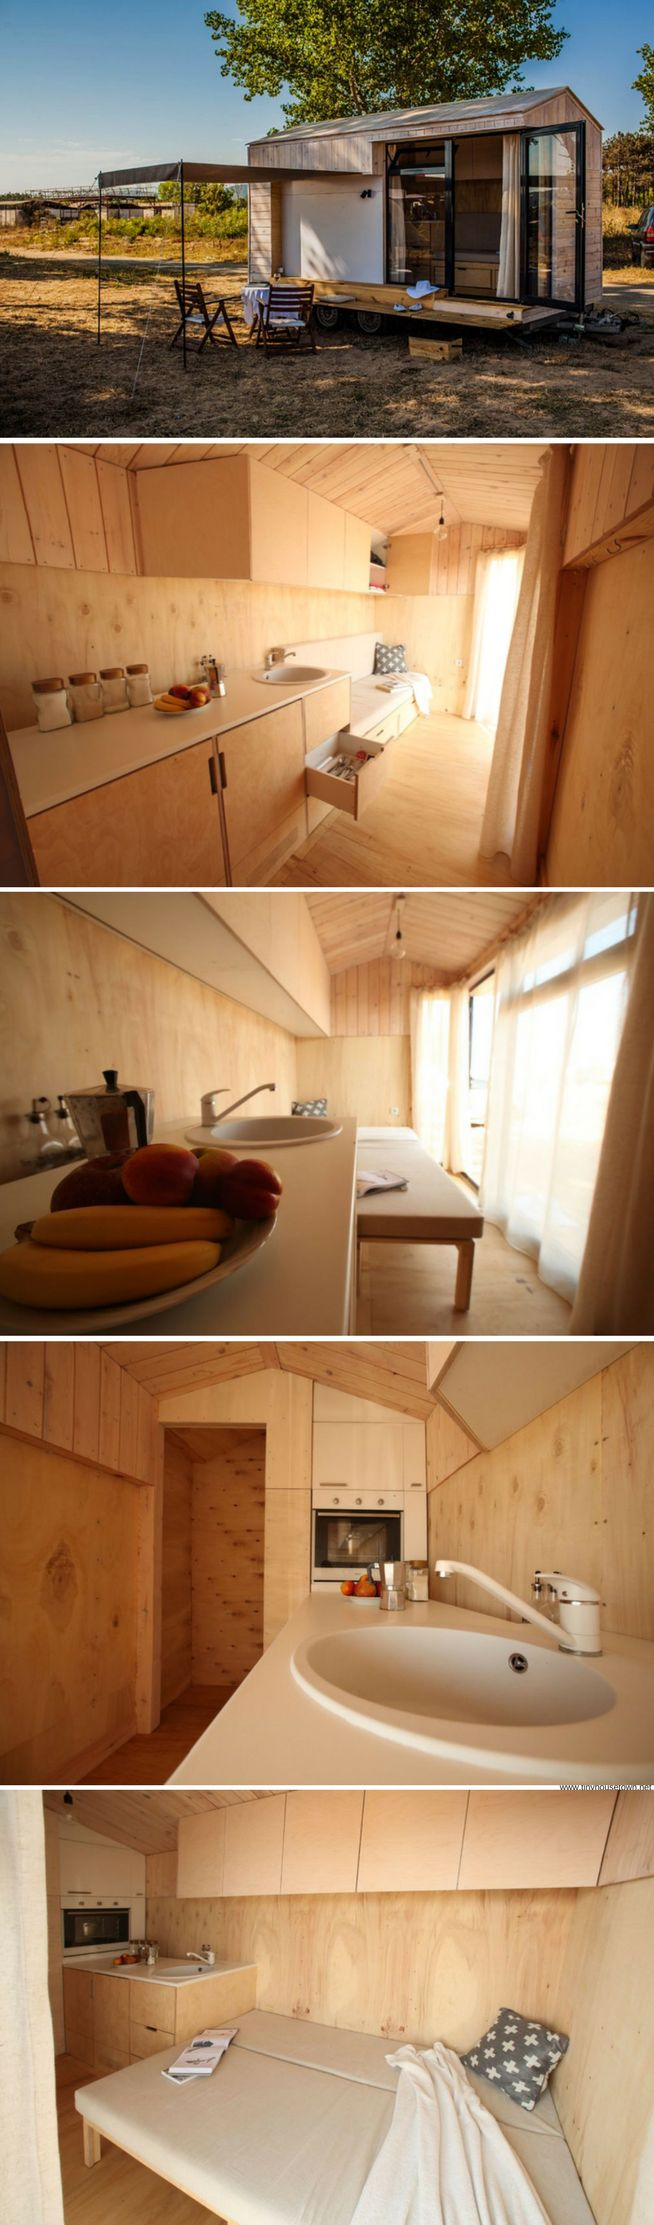 The Koleliba tiny house 1603 best Small